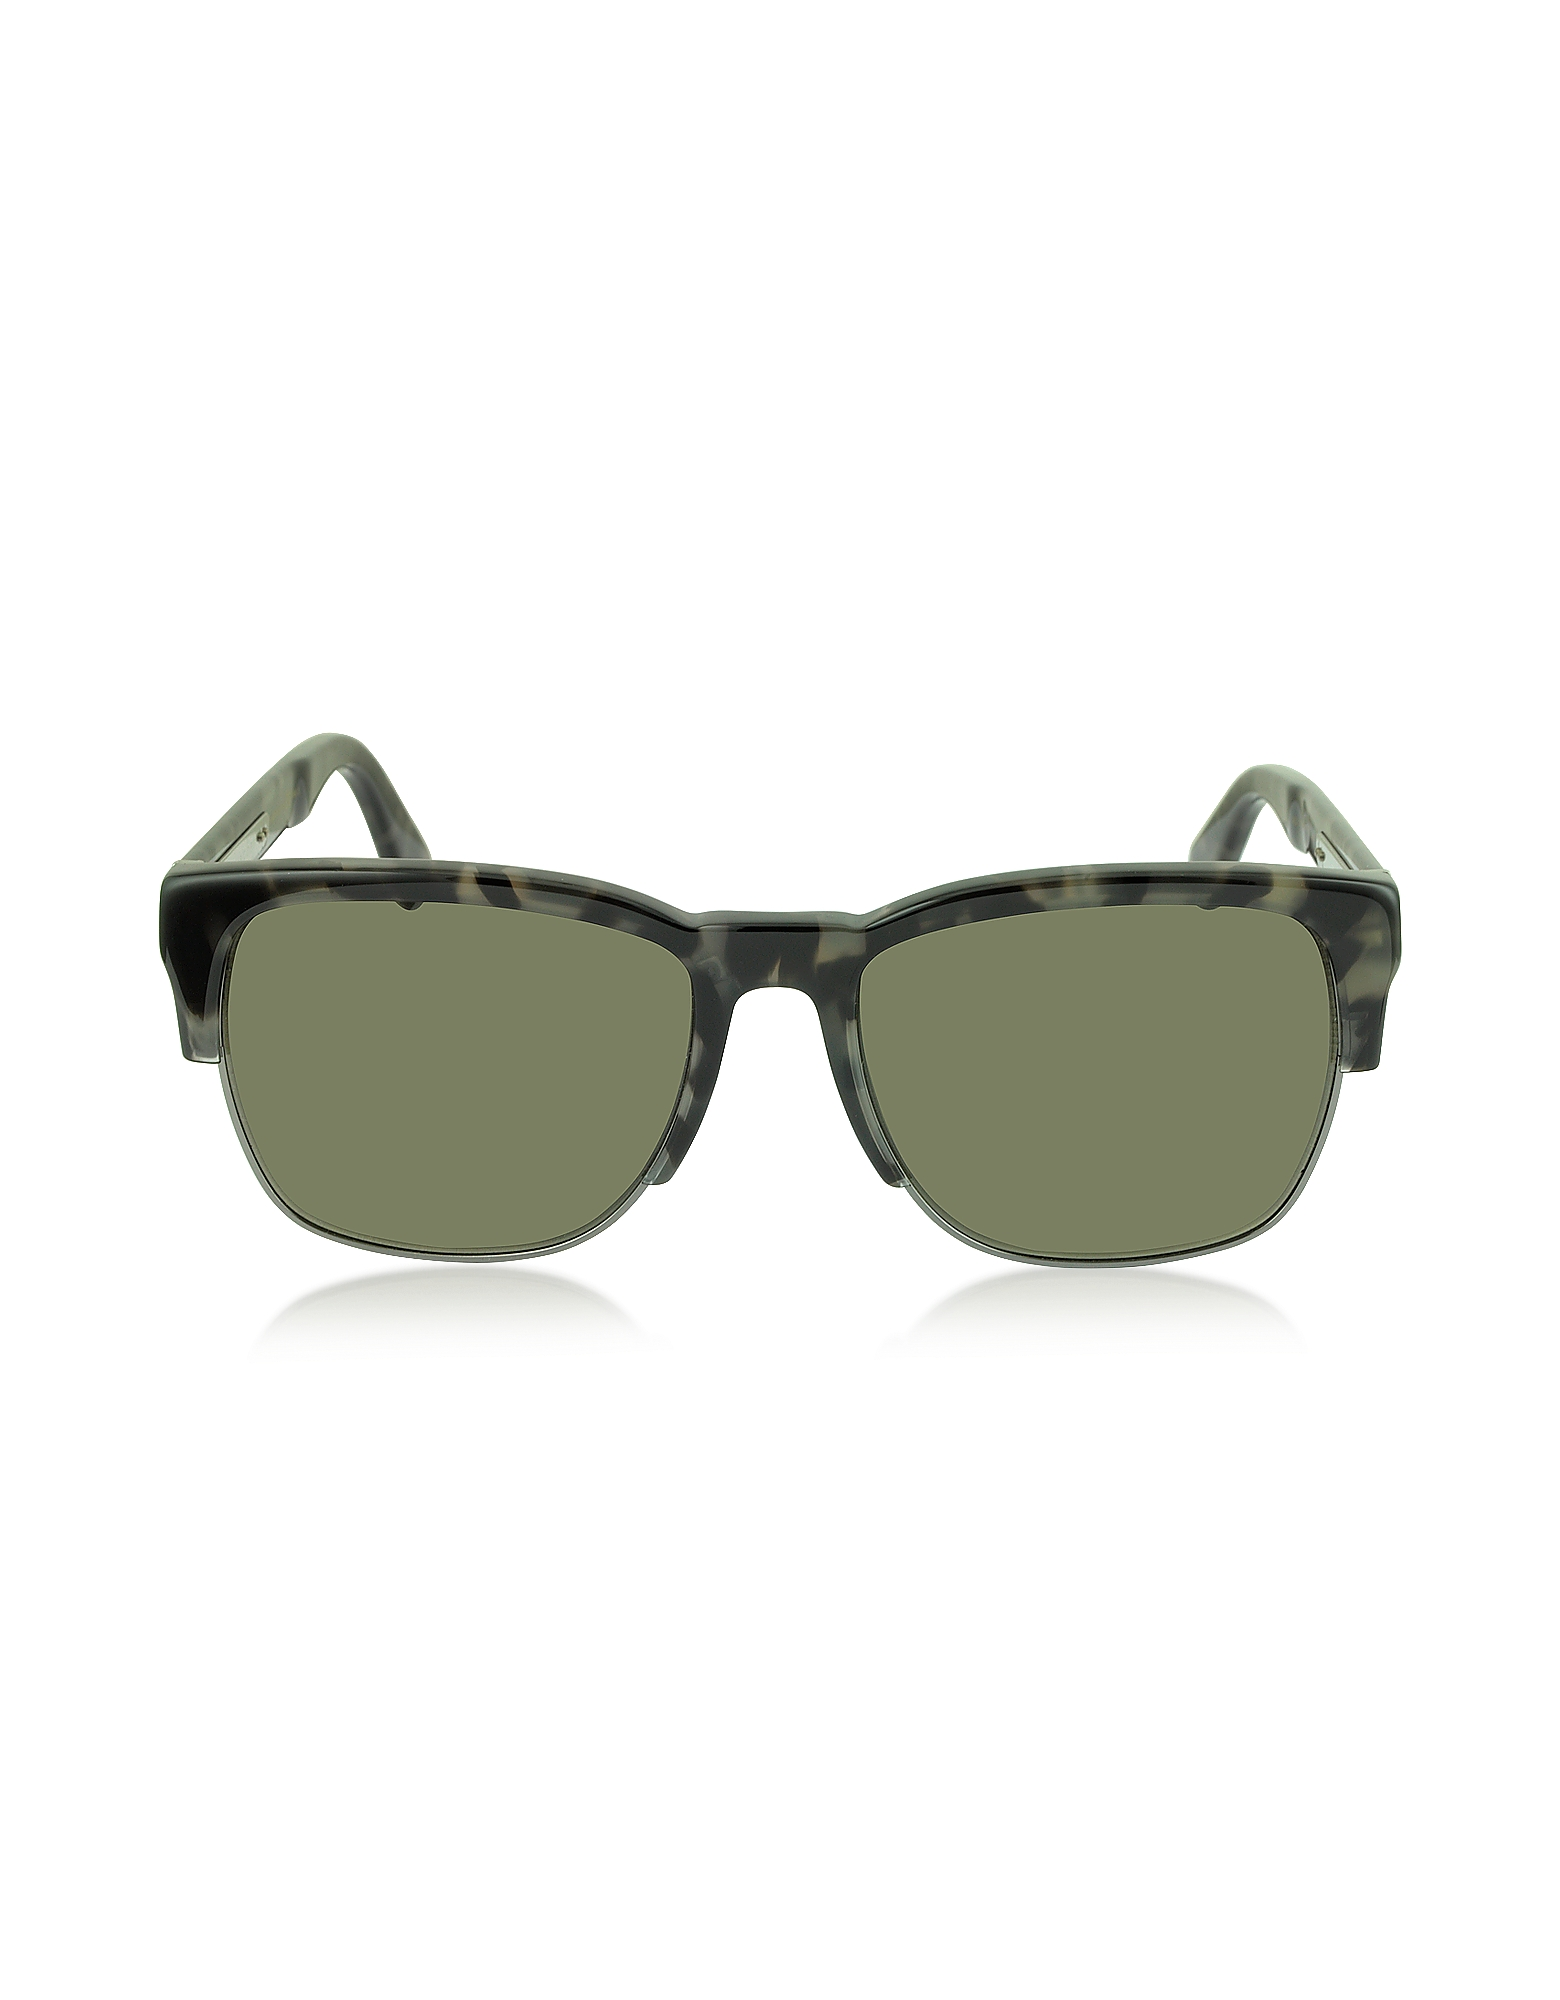 Marc Jacobs Sunglasses, MJ 526/S Acetate & Metal Men's Sunglasses